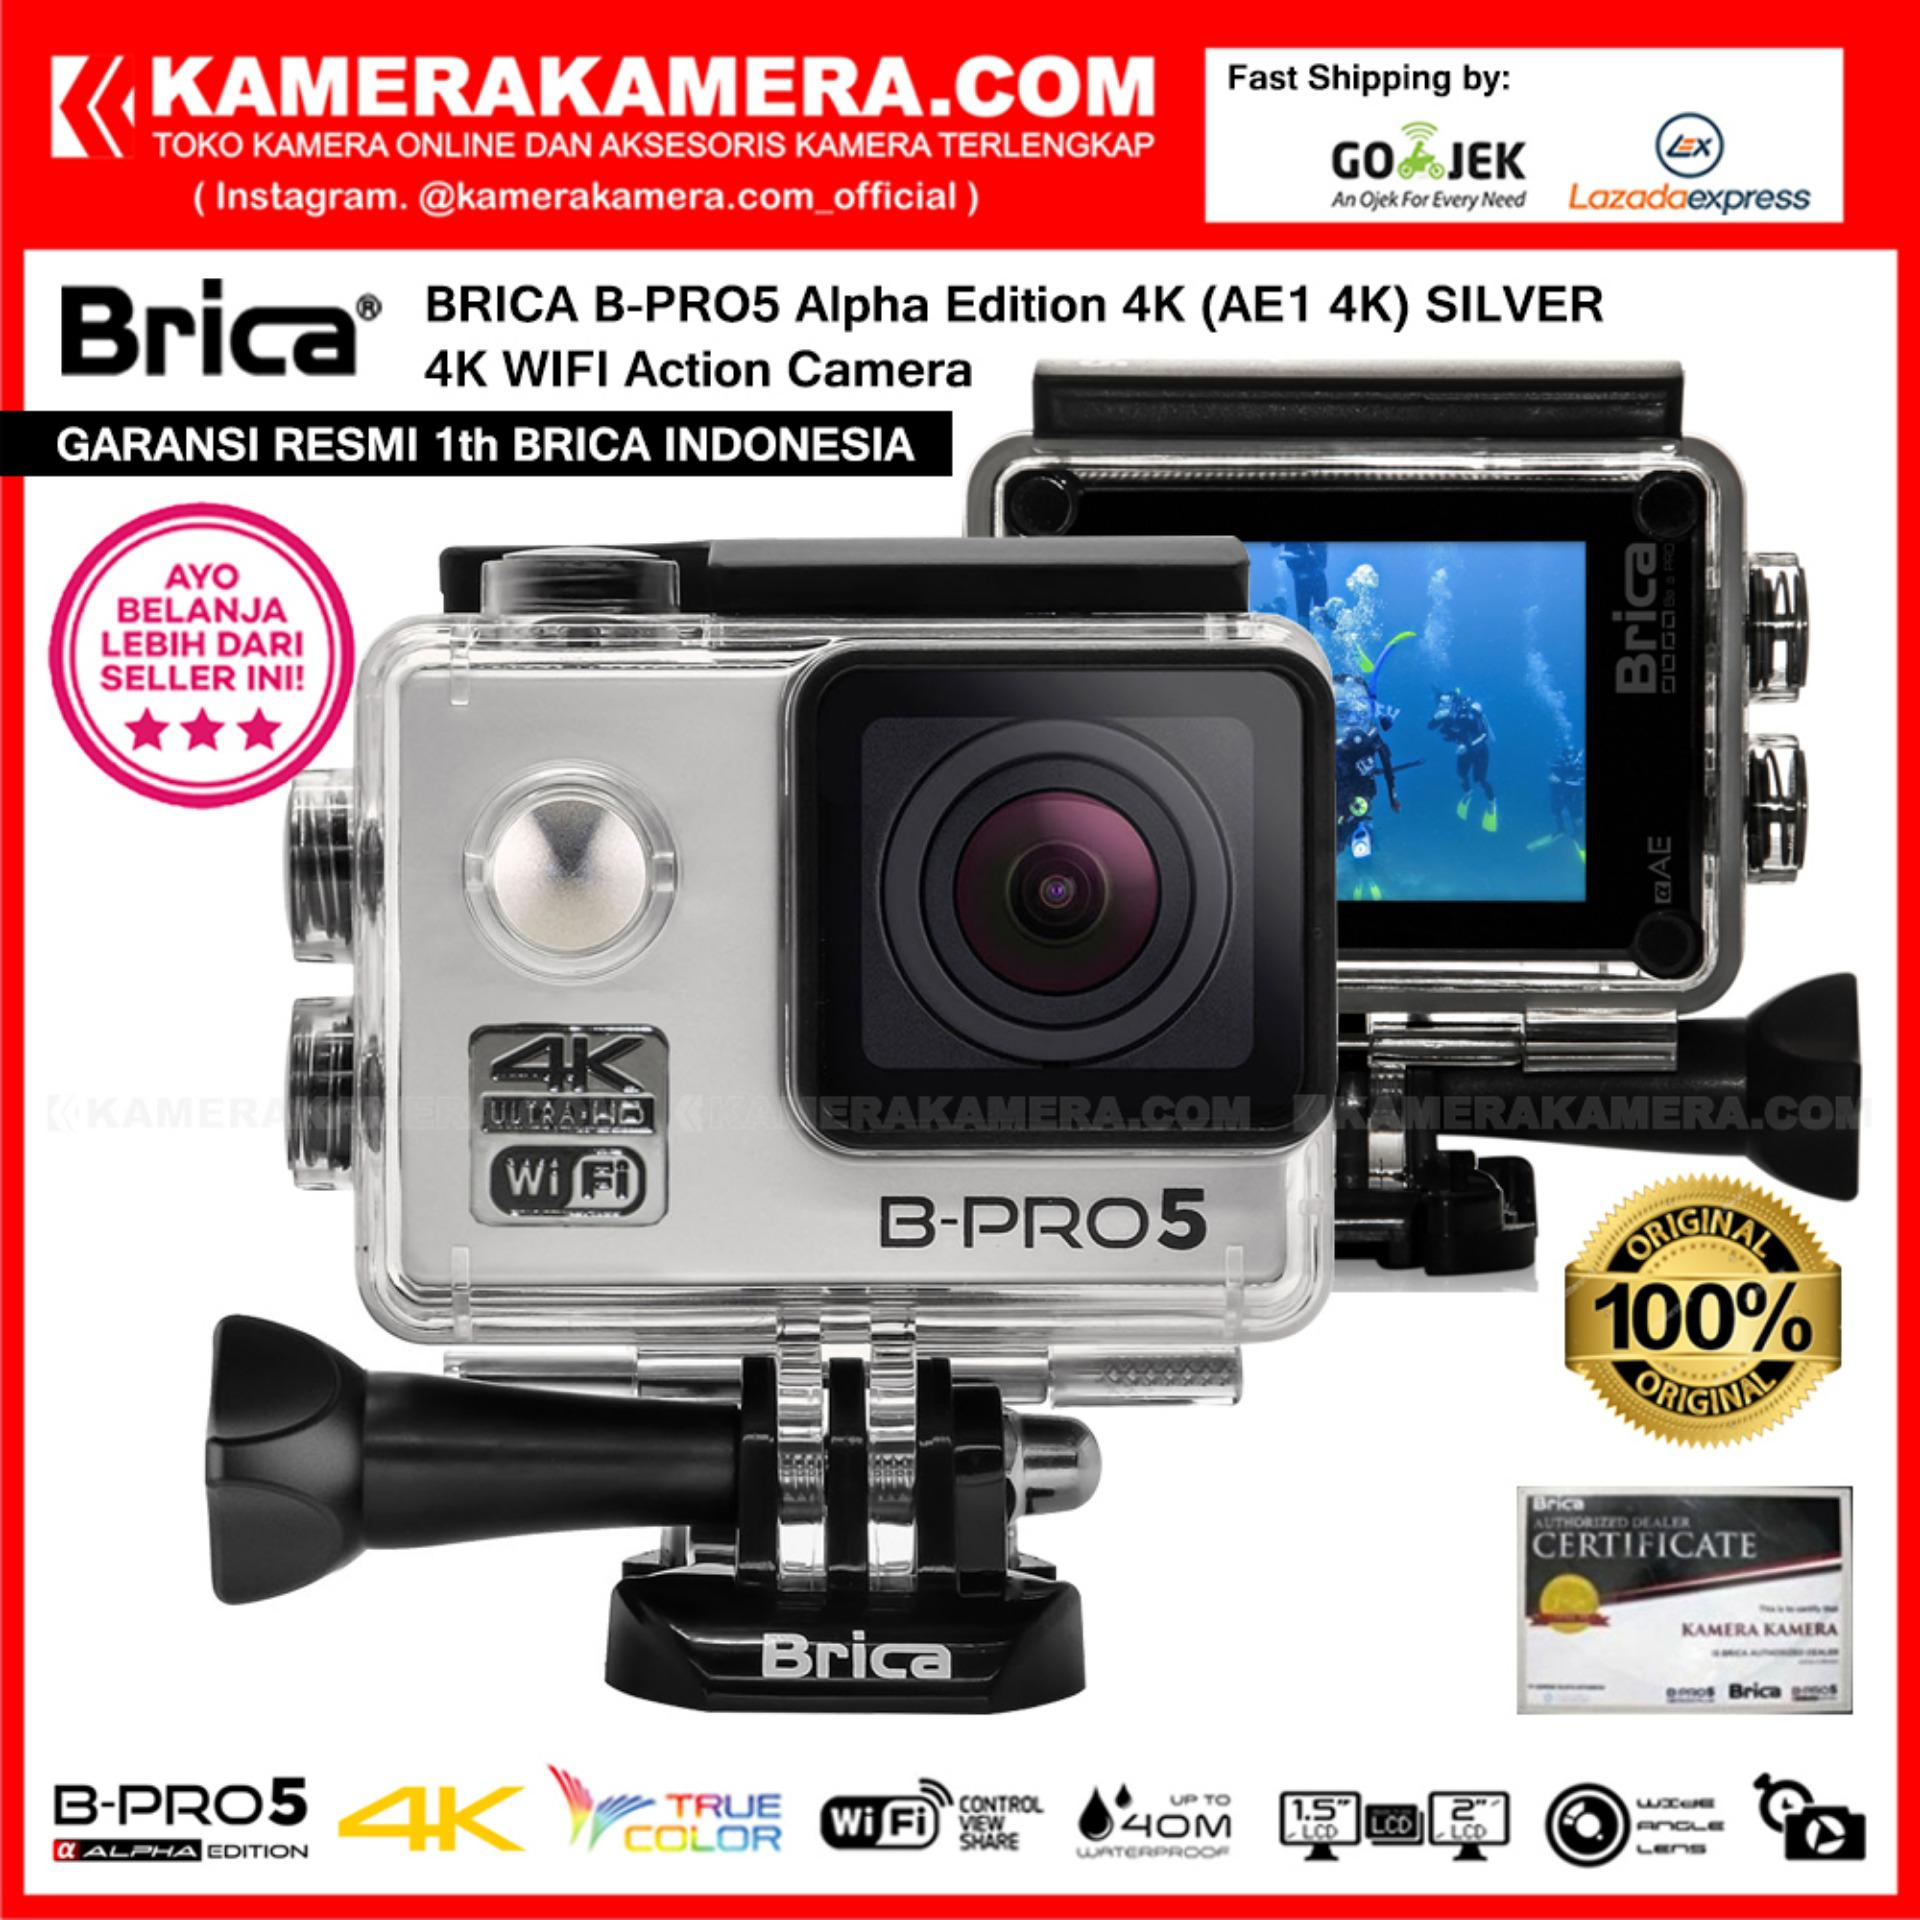 Harga Brica B Pro5 Alpha Edition 4K Ae1 4K Silver 4K Ultra Hd 12Mp Action Camera Garansi Resmi Brica Indonesia Brica Ori